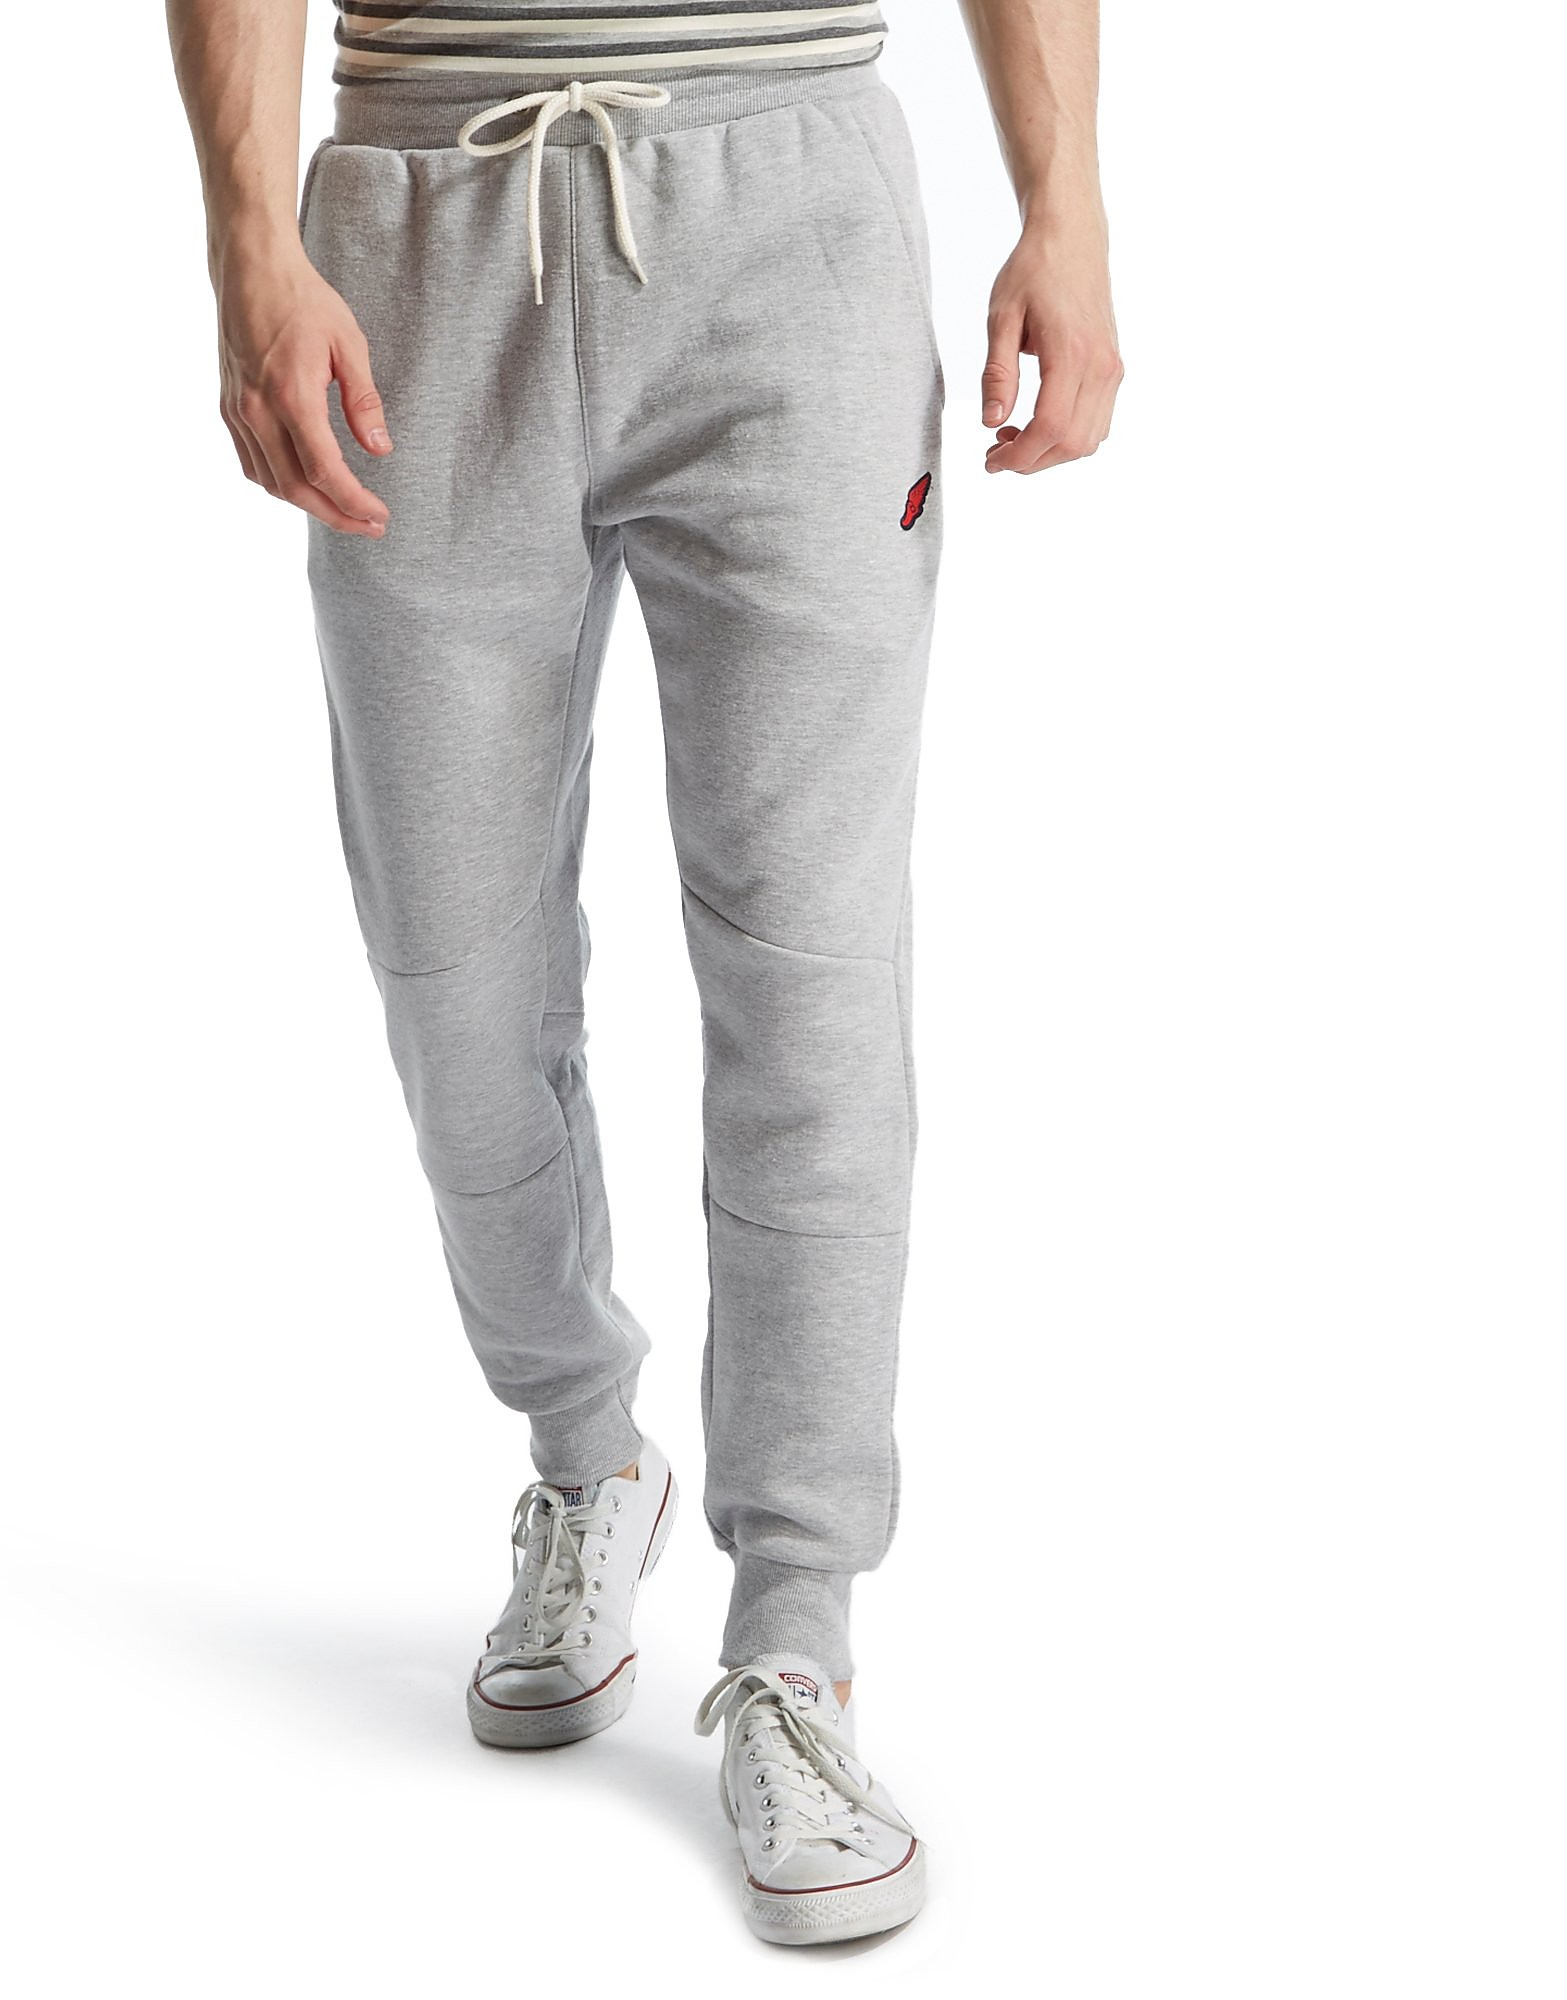 Brookhaven Paxton Jogging Pants